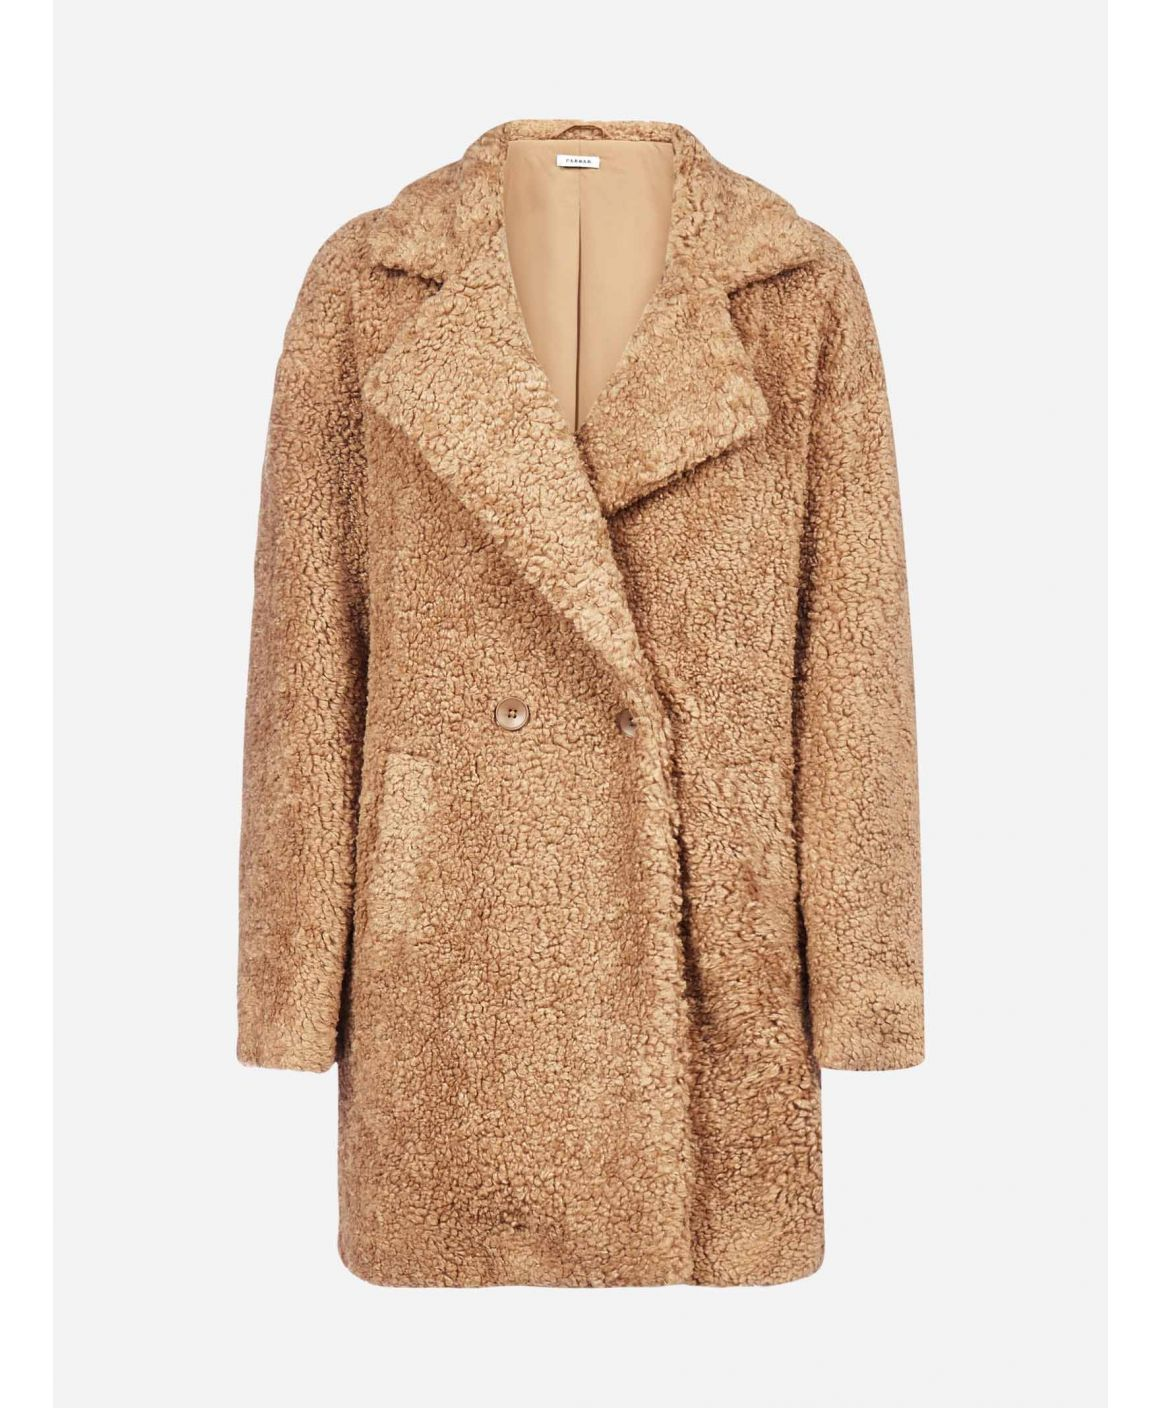 Postit faux-shearling coat